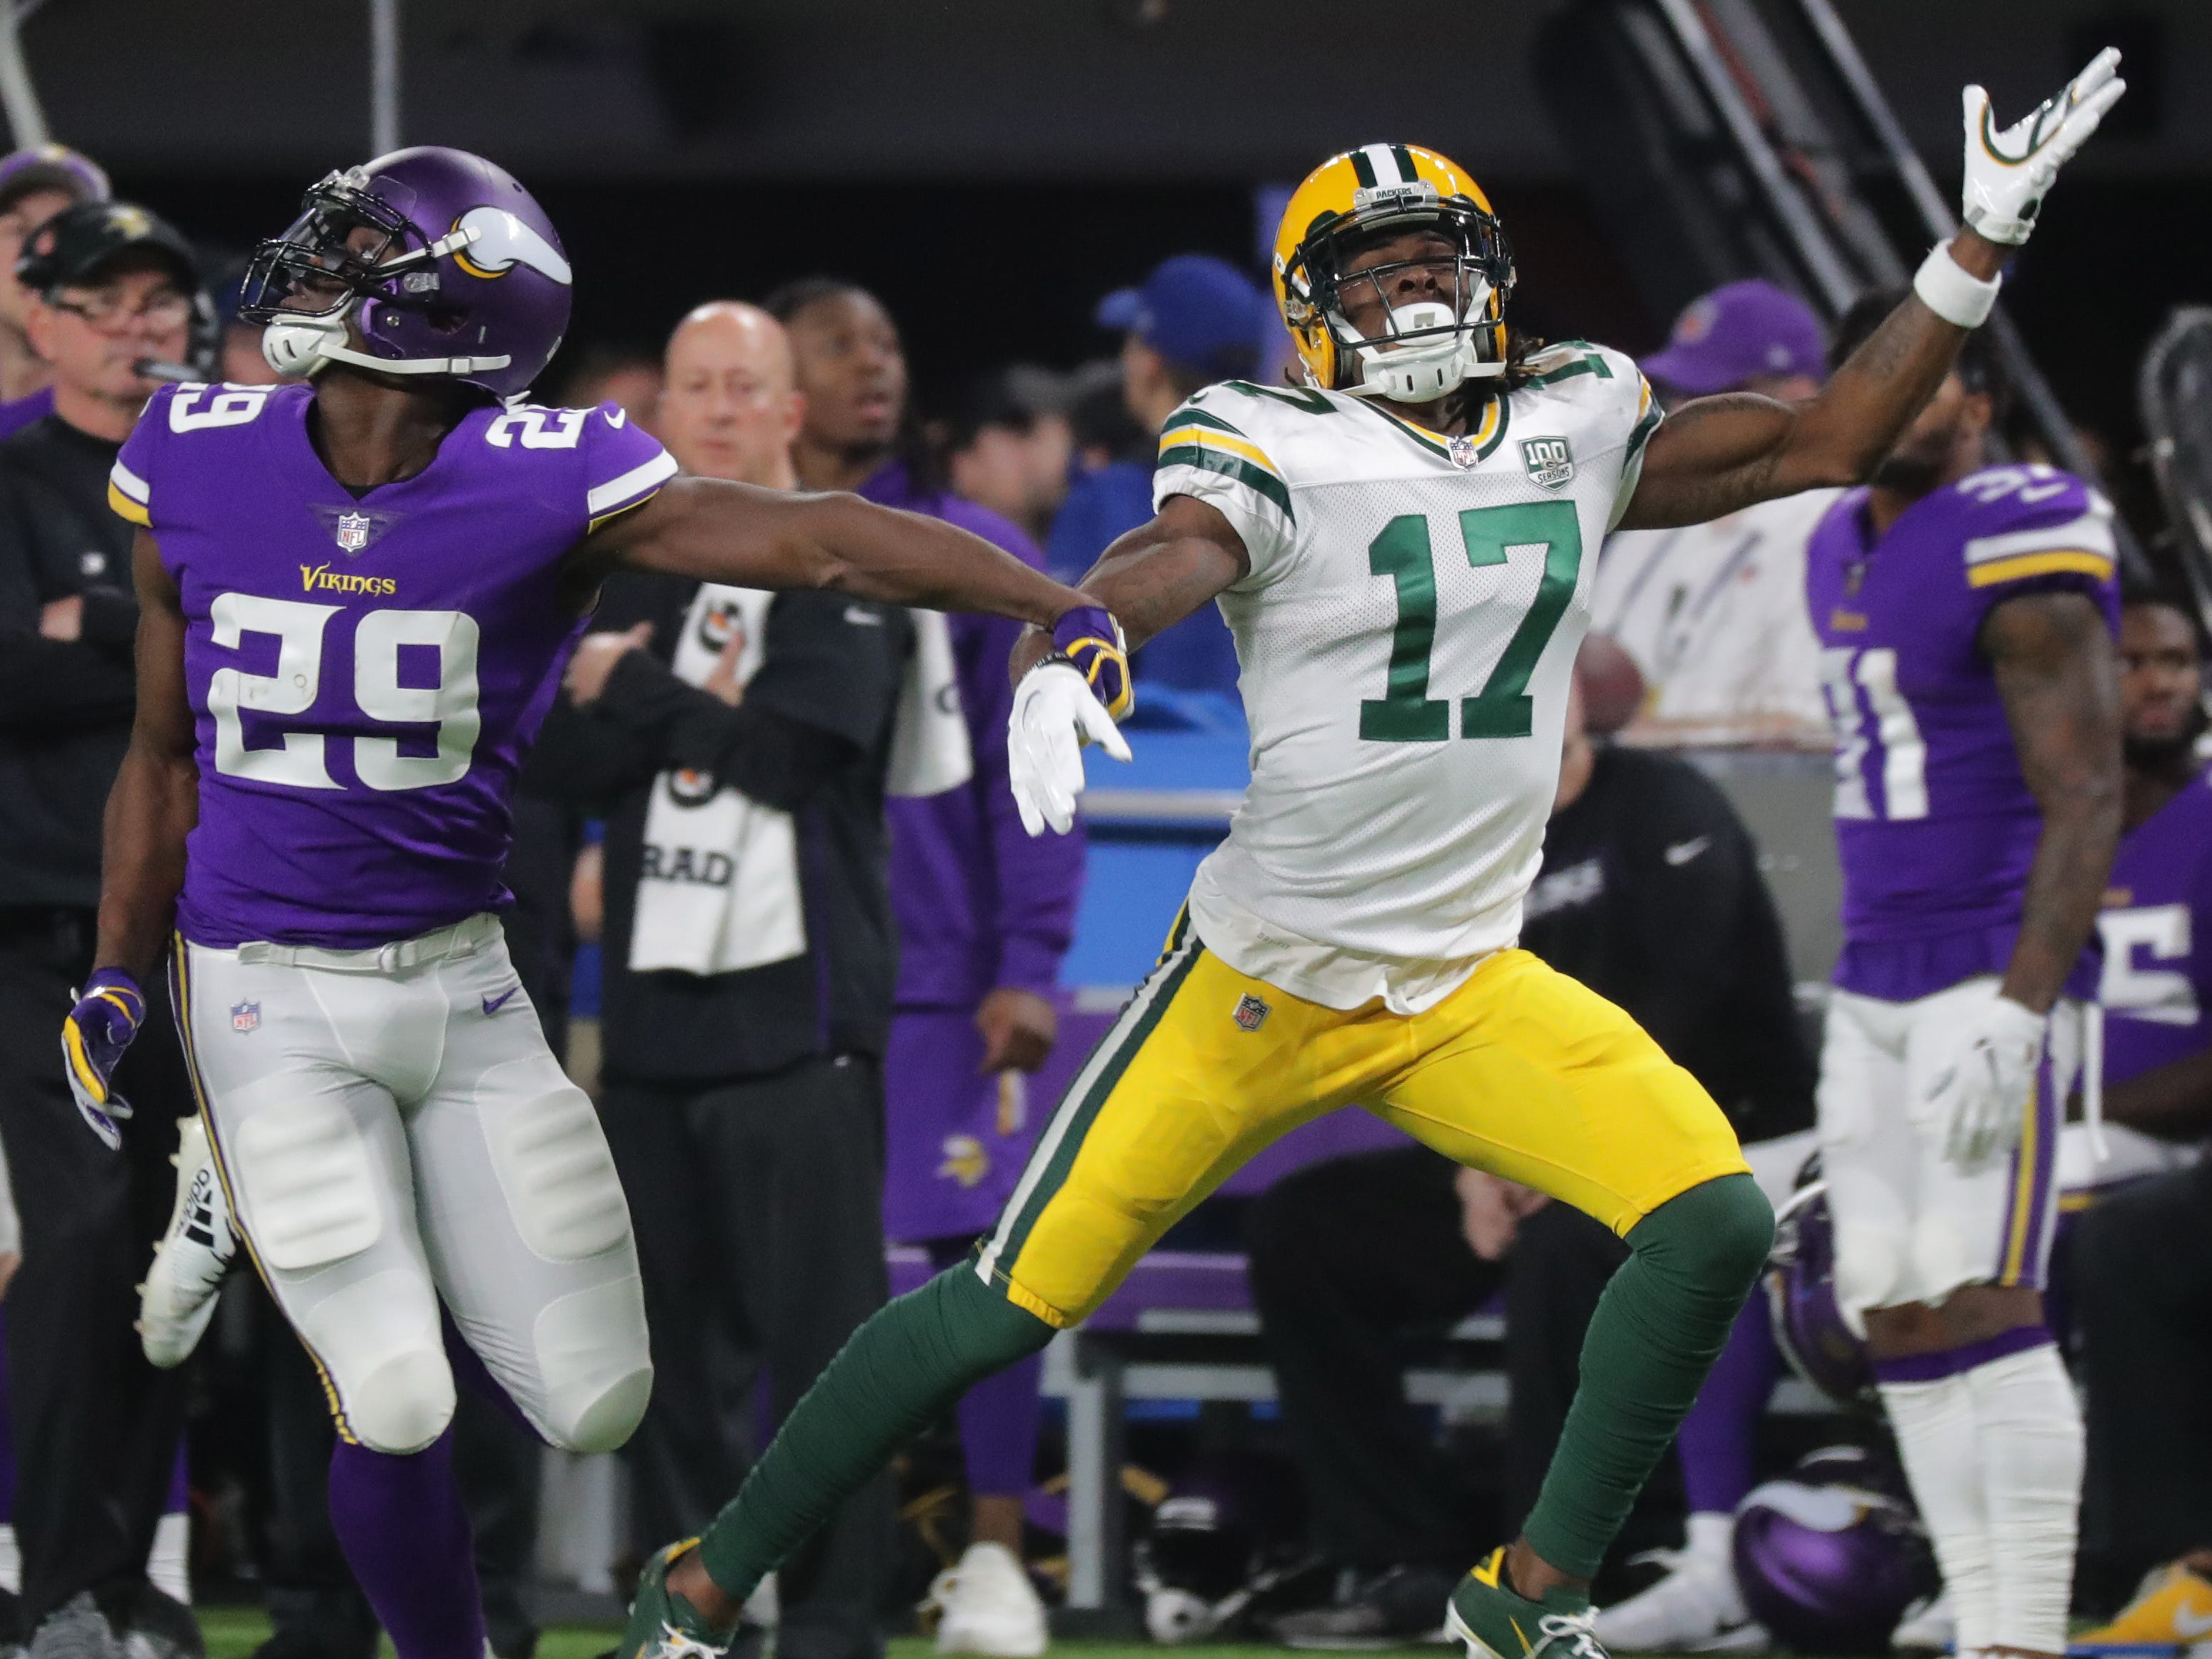 Minnesota Vikings cornerback Xavier Rhodes (29) is called for pass interference while covering Green Bay Packers wide receiver Davante Adams (17) during the second quarter of their game Sunday, November 25, 2018 at U.S. Bank Stadium in Minneapolis, Minn.